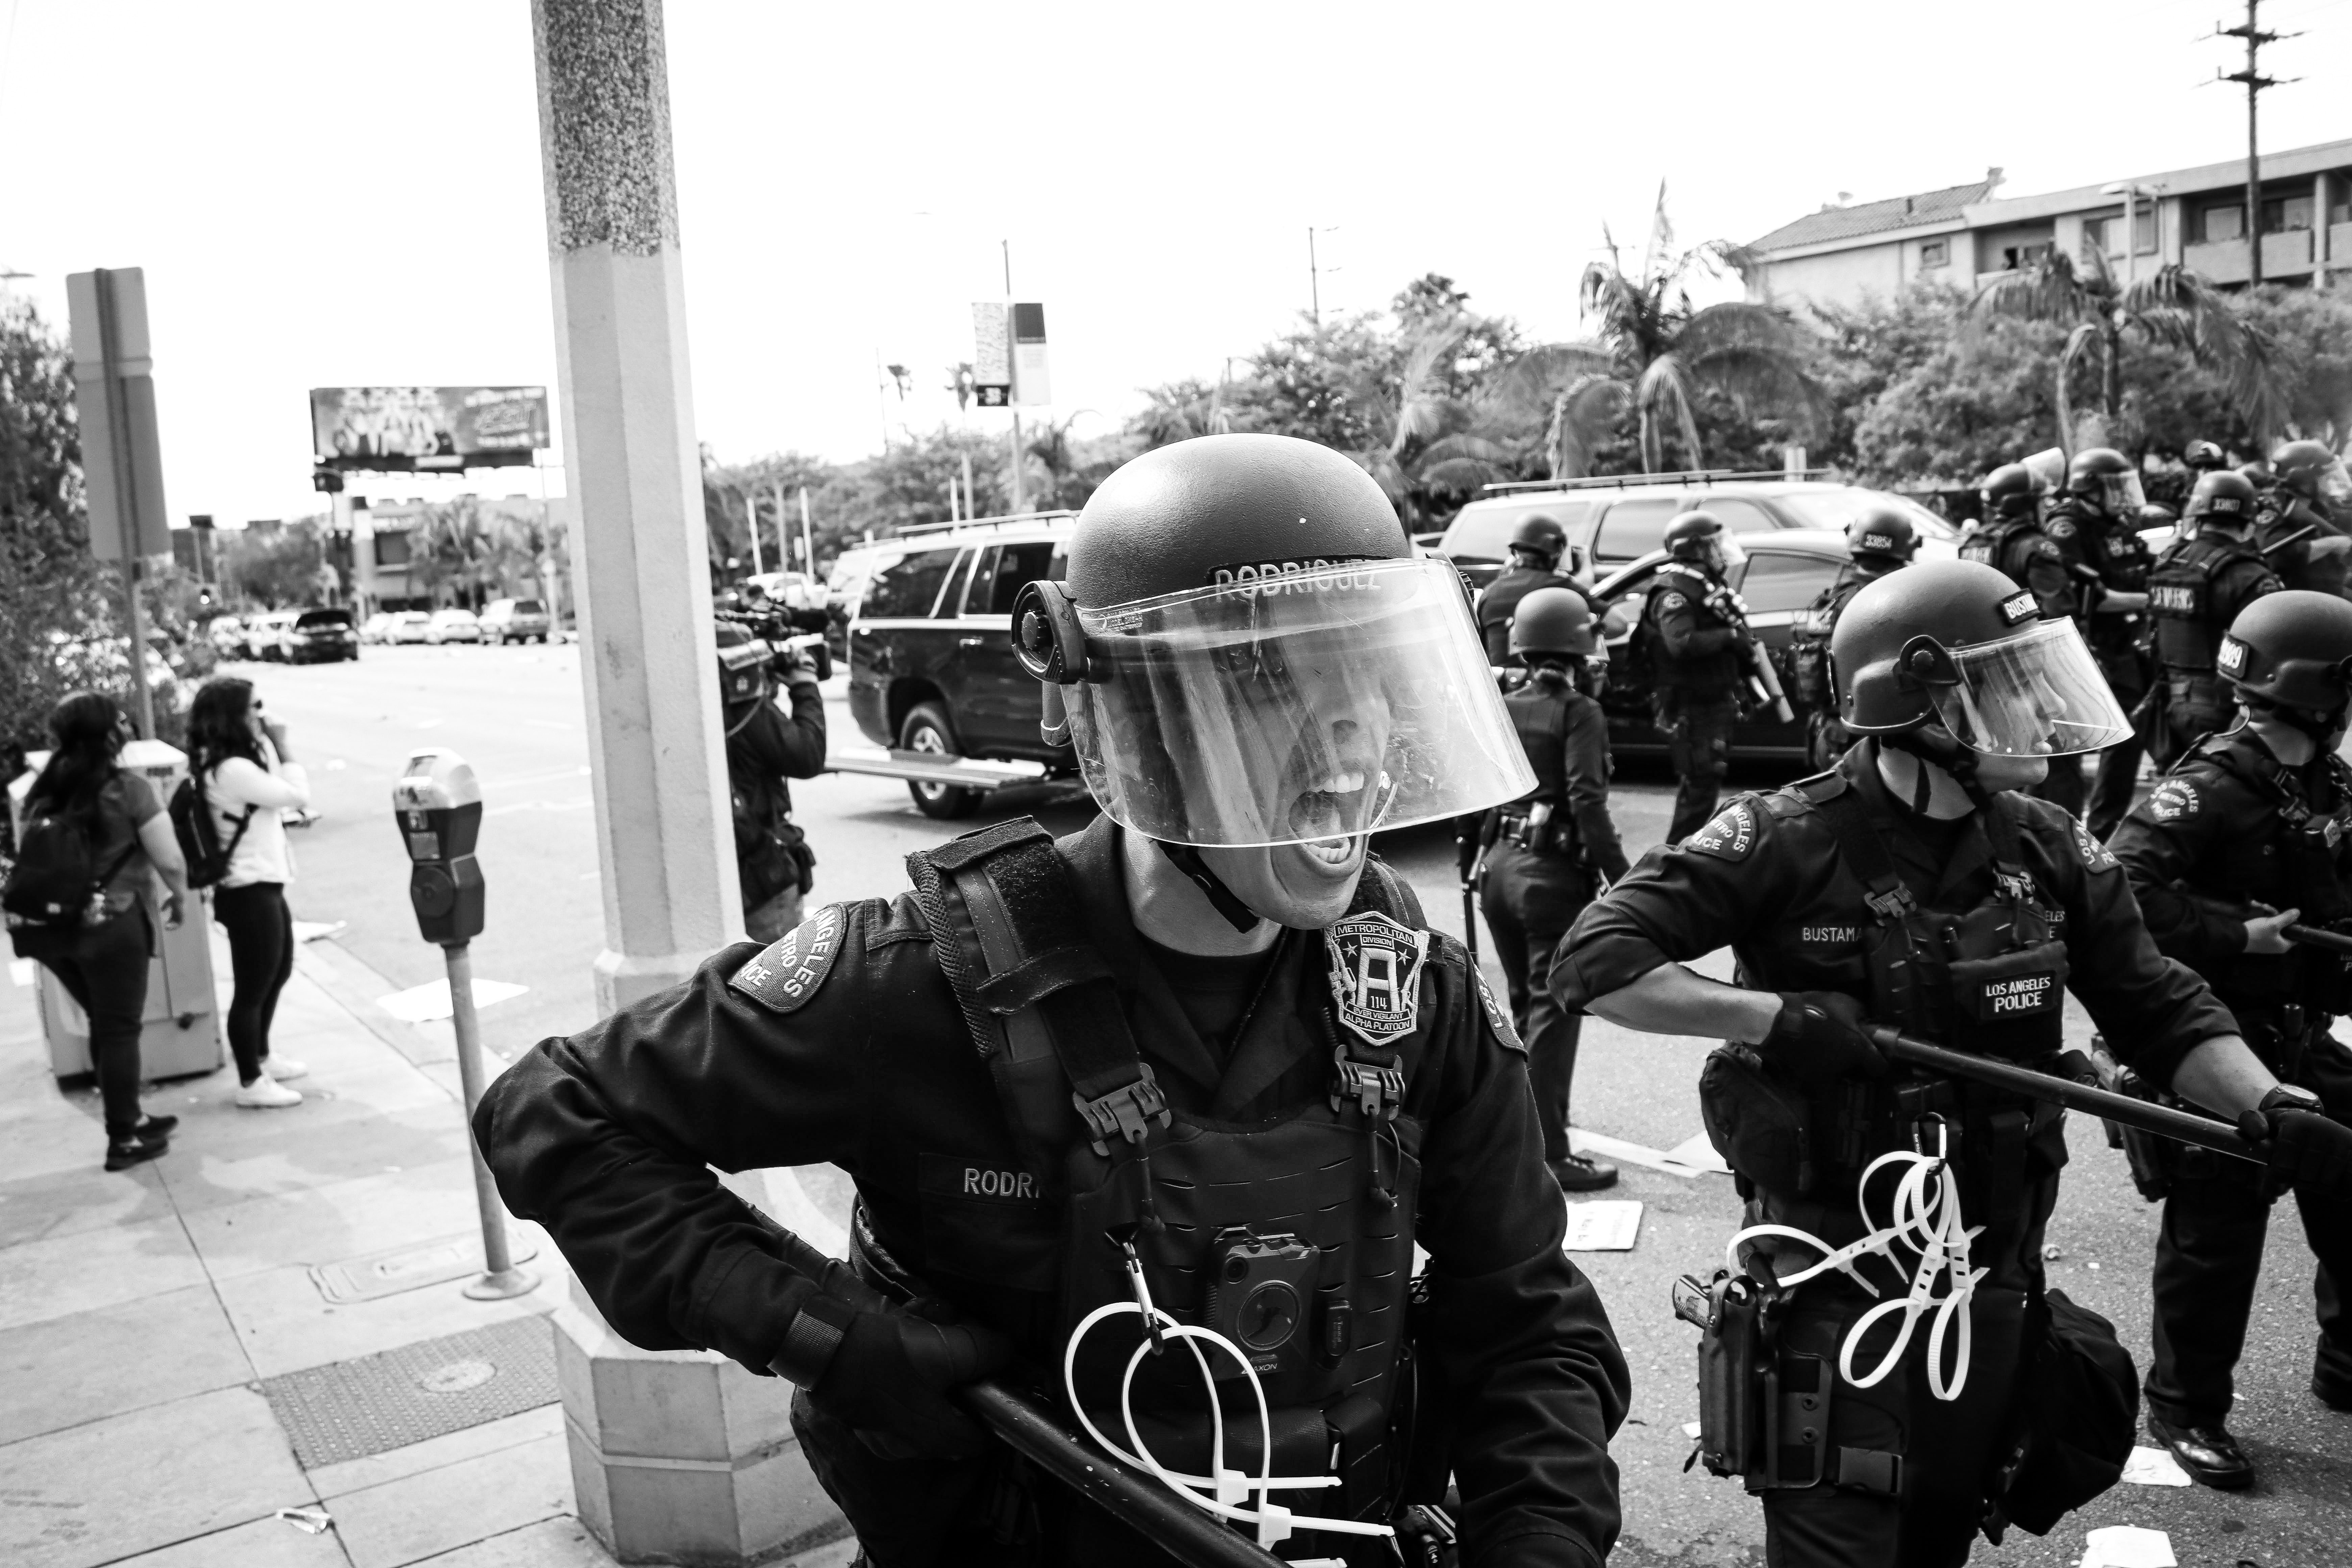 Los Angeles police officer pushing back protesting crowds